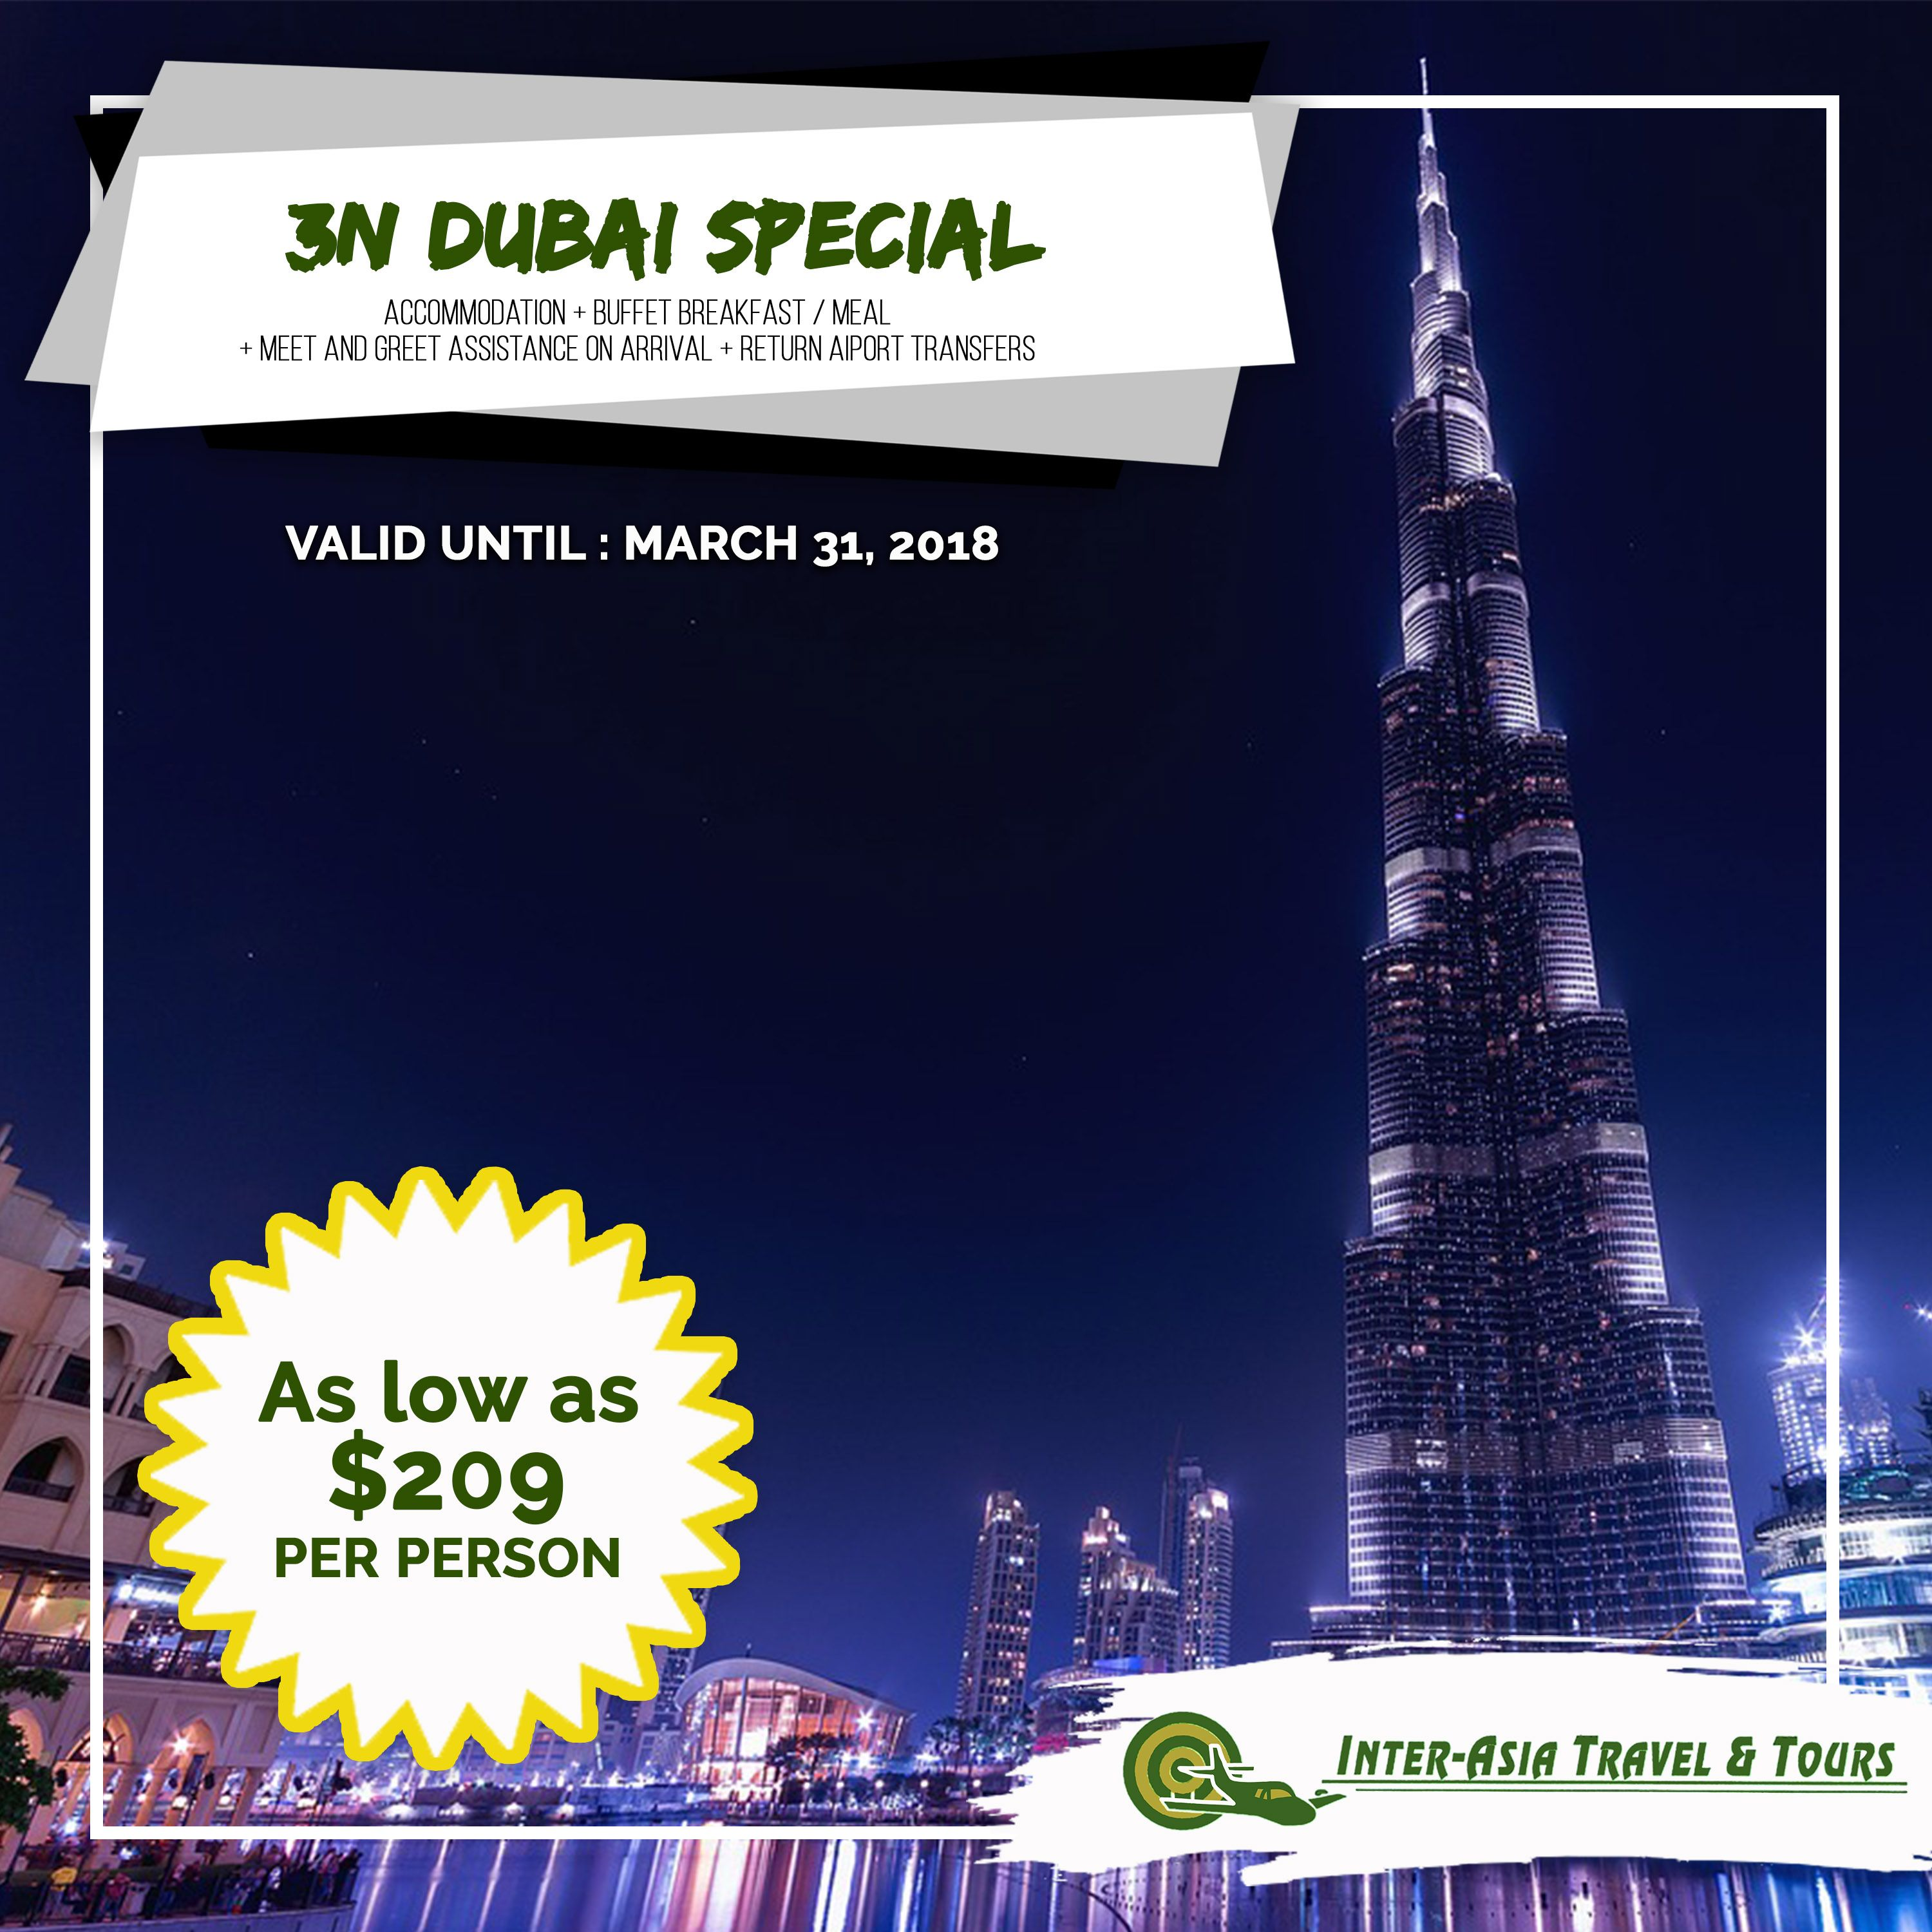 3n dubai special valid january march 2018 inclusions 3nights at buffet breakfast or meal plan as specified with room type meet and greet assistance on arrival outside dubai airport m4hsunfo